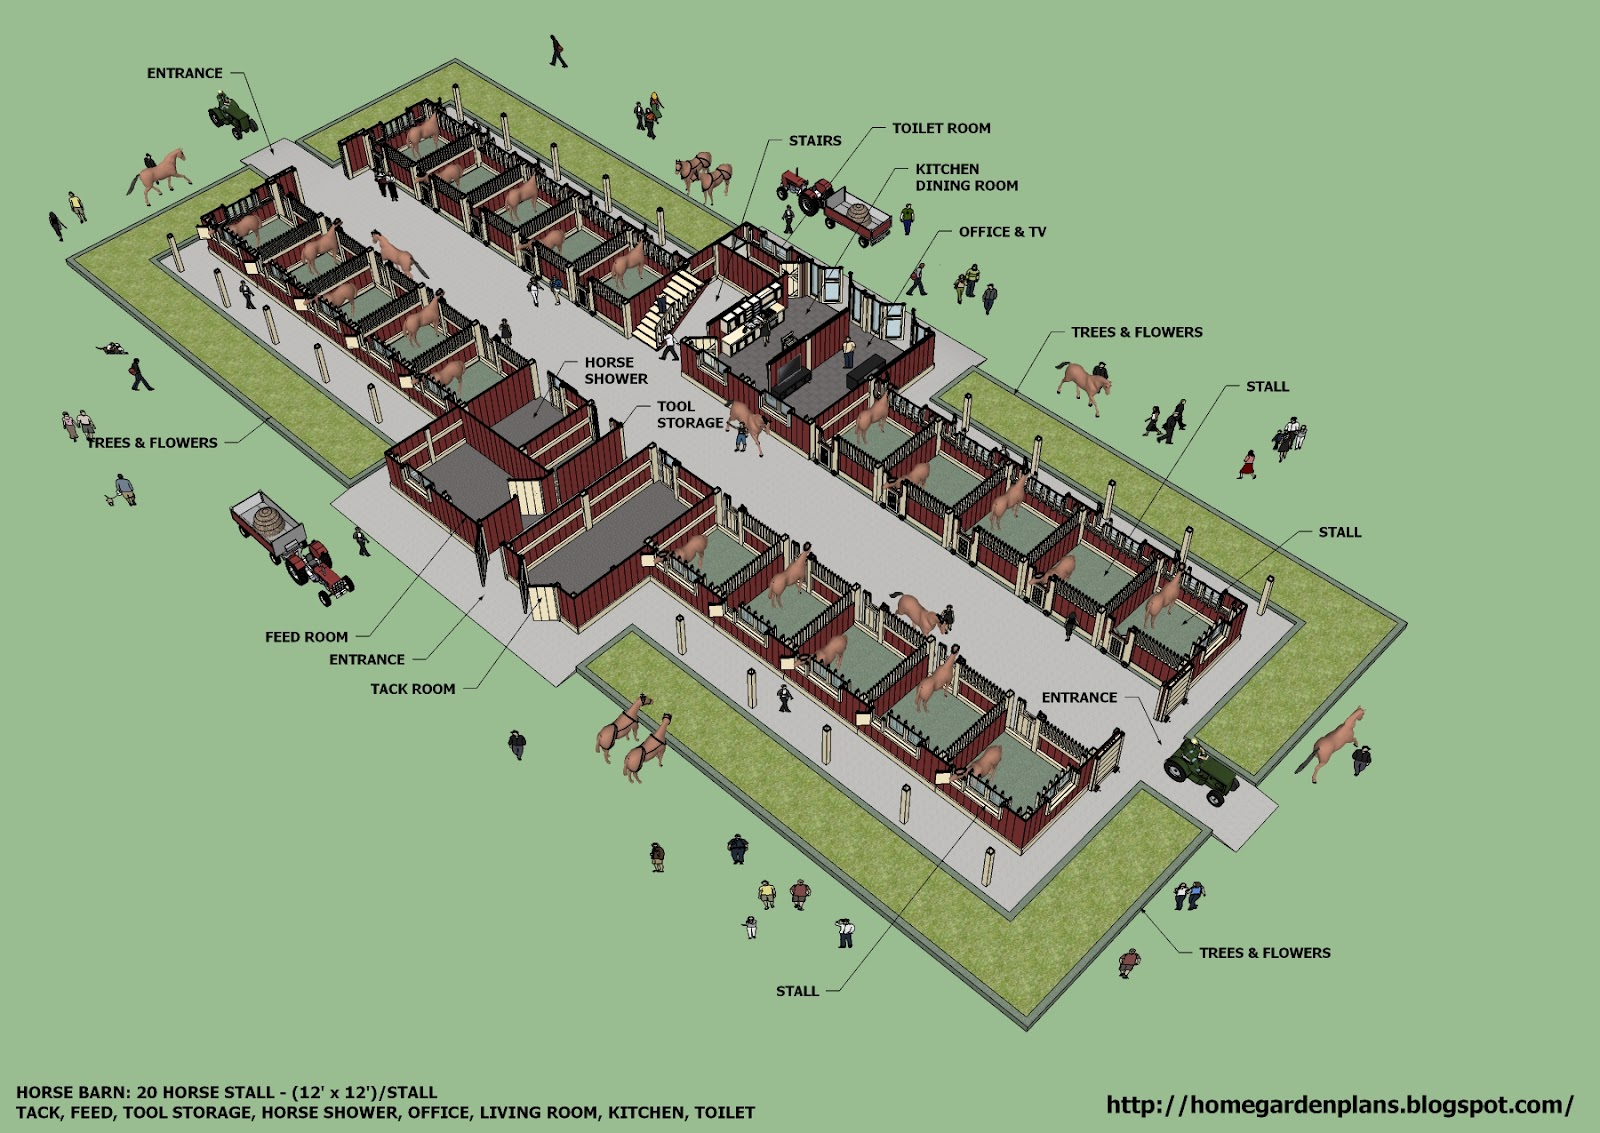 Home garden plans july 2011 for Horse stable blueprints